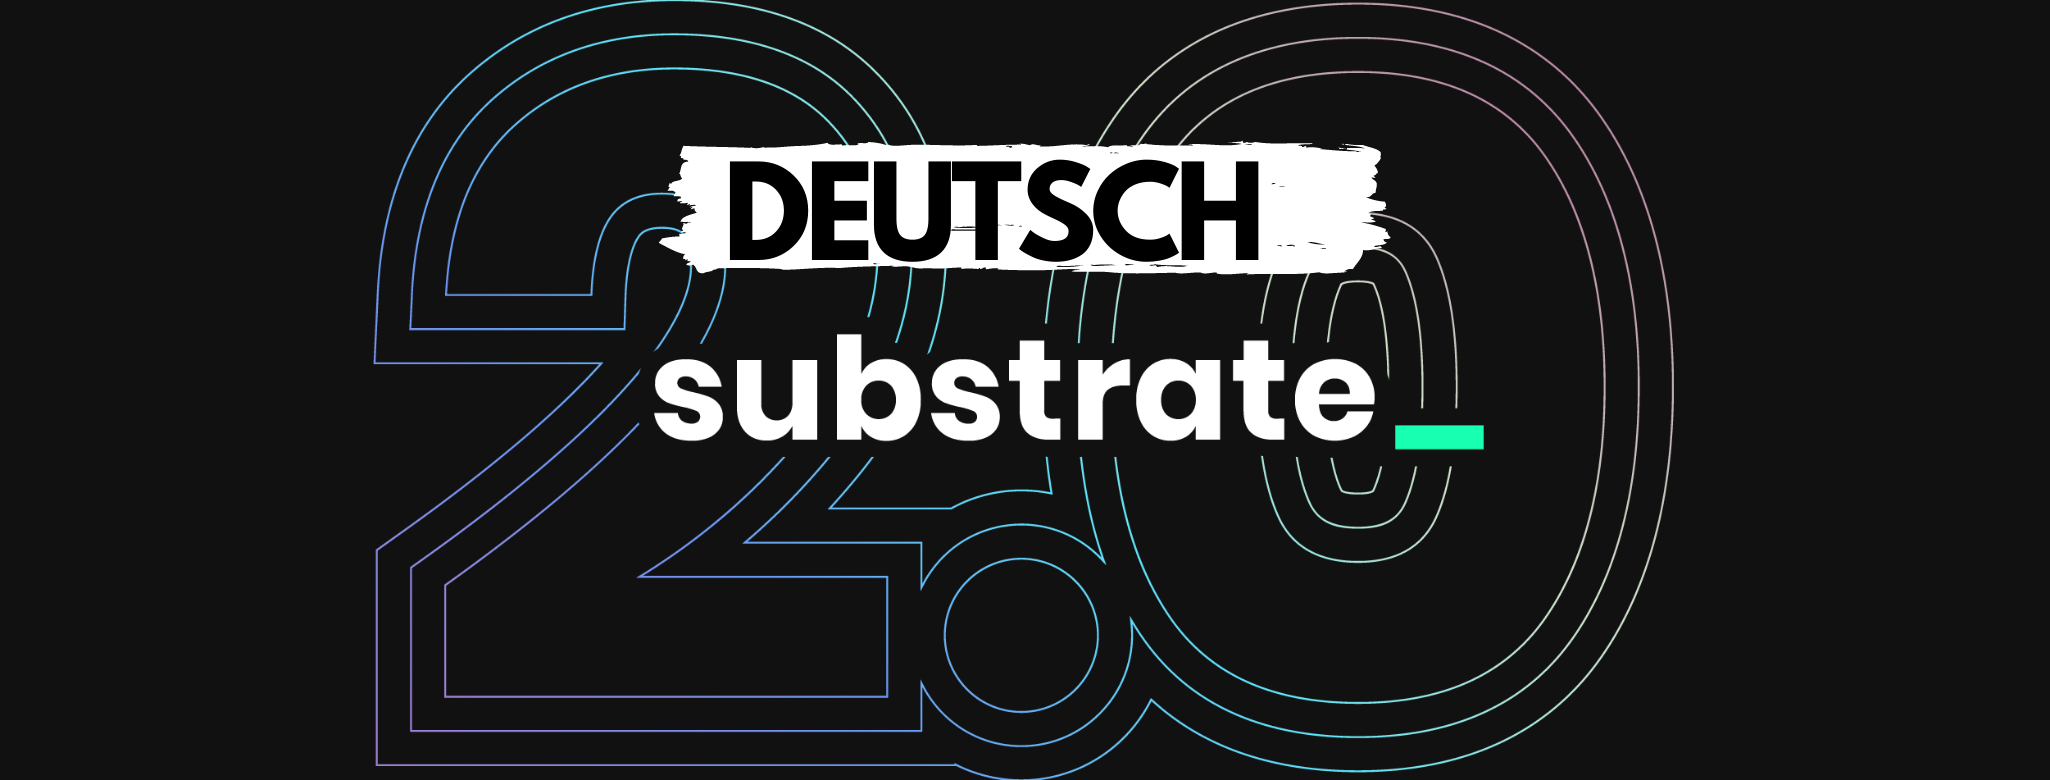 Substrate 2.0 ist hier